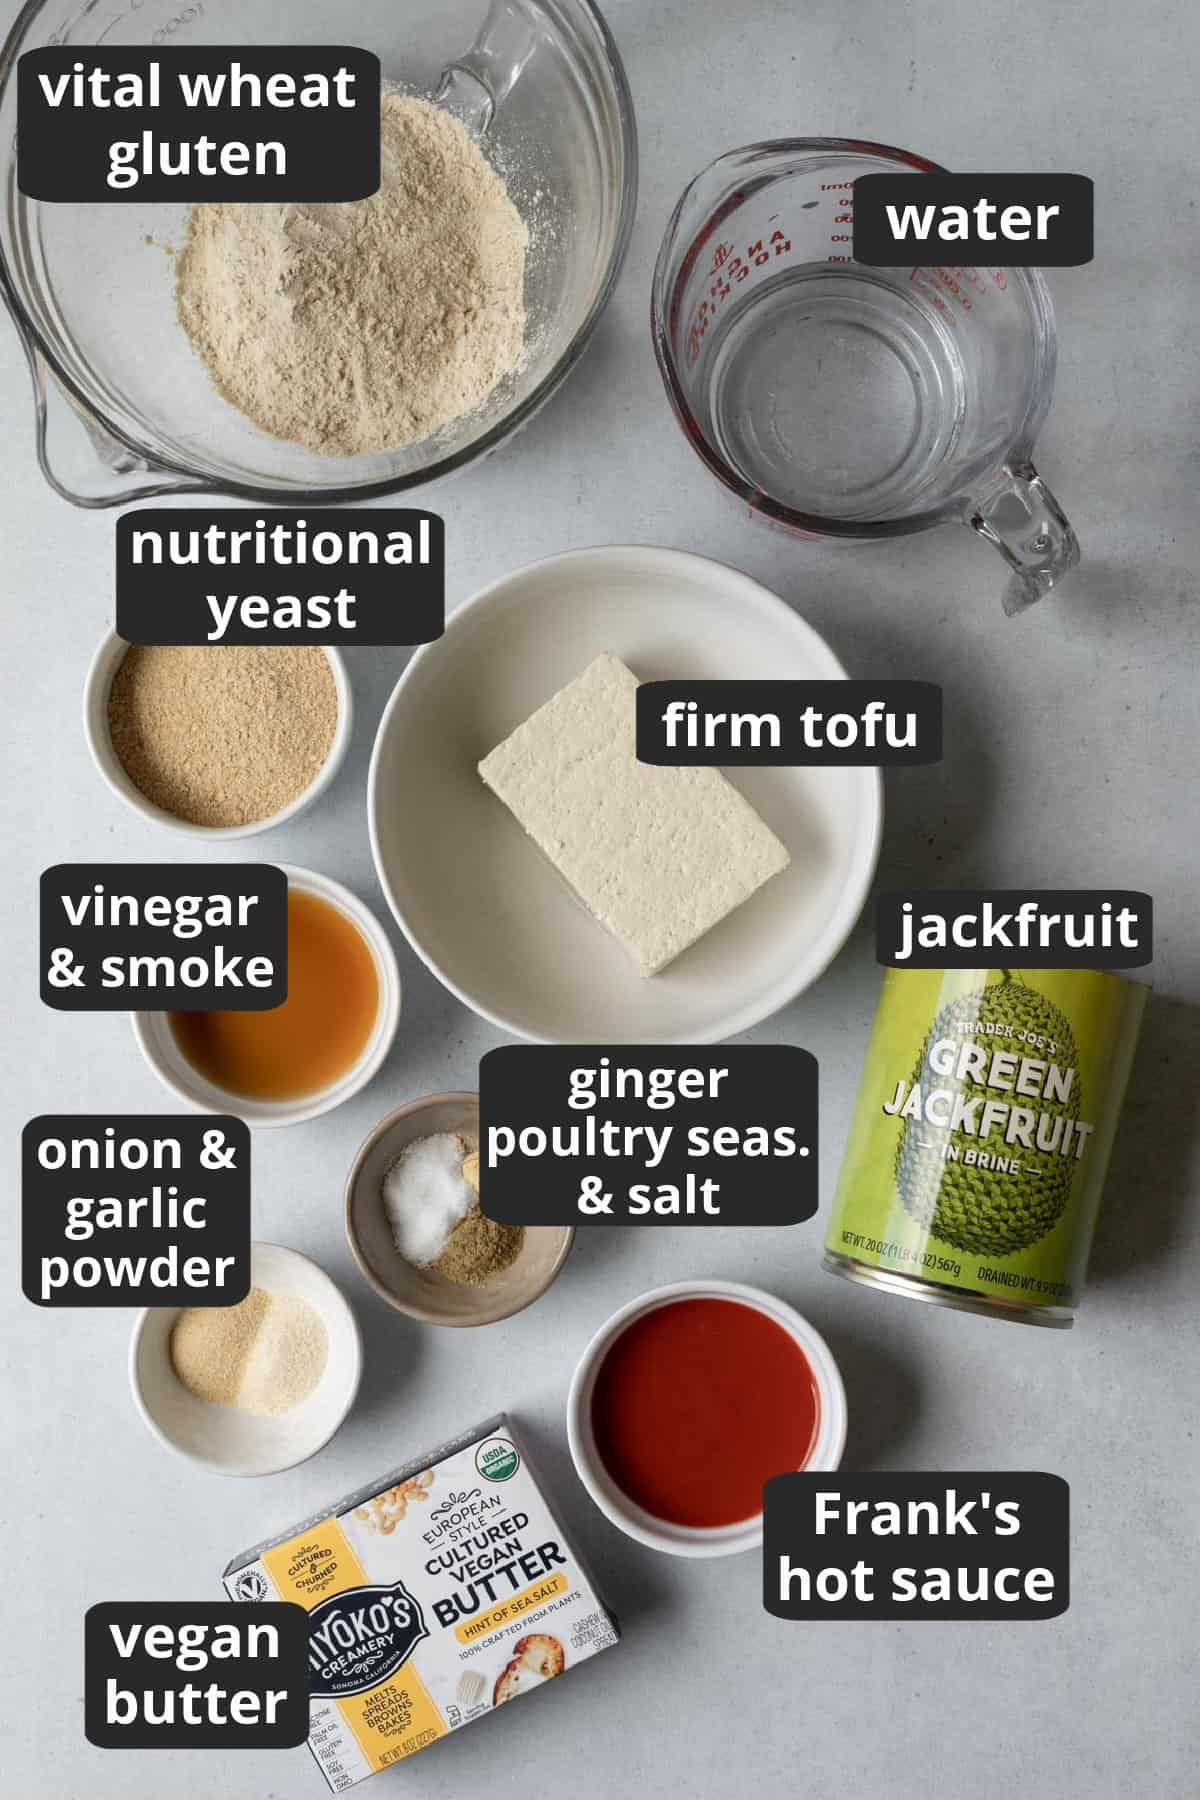 labeled photo of the ingredients needed to make the recipe.